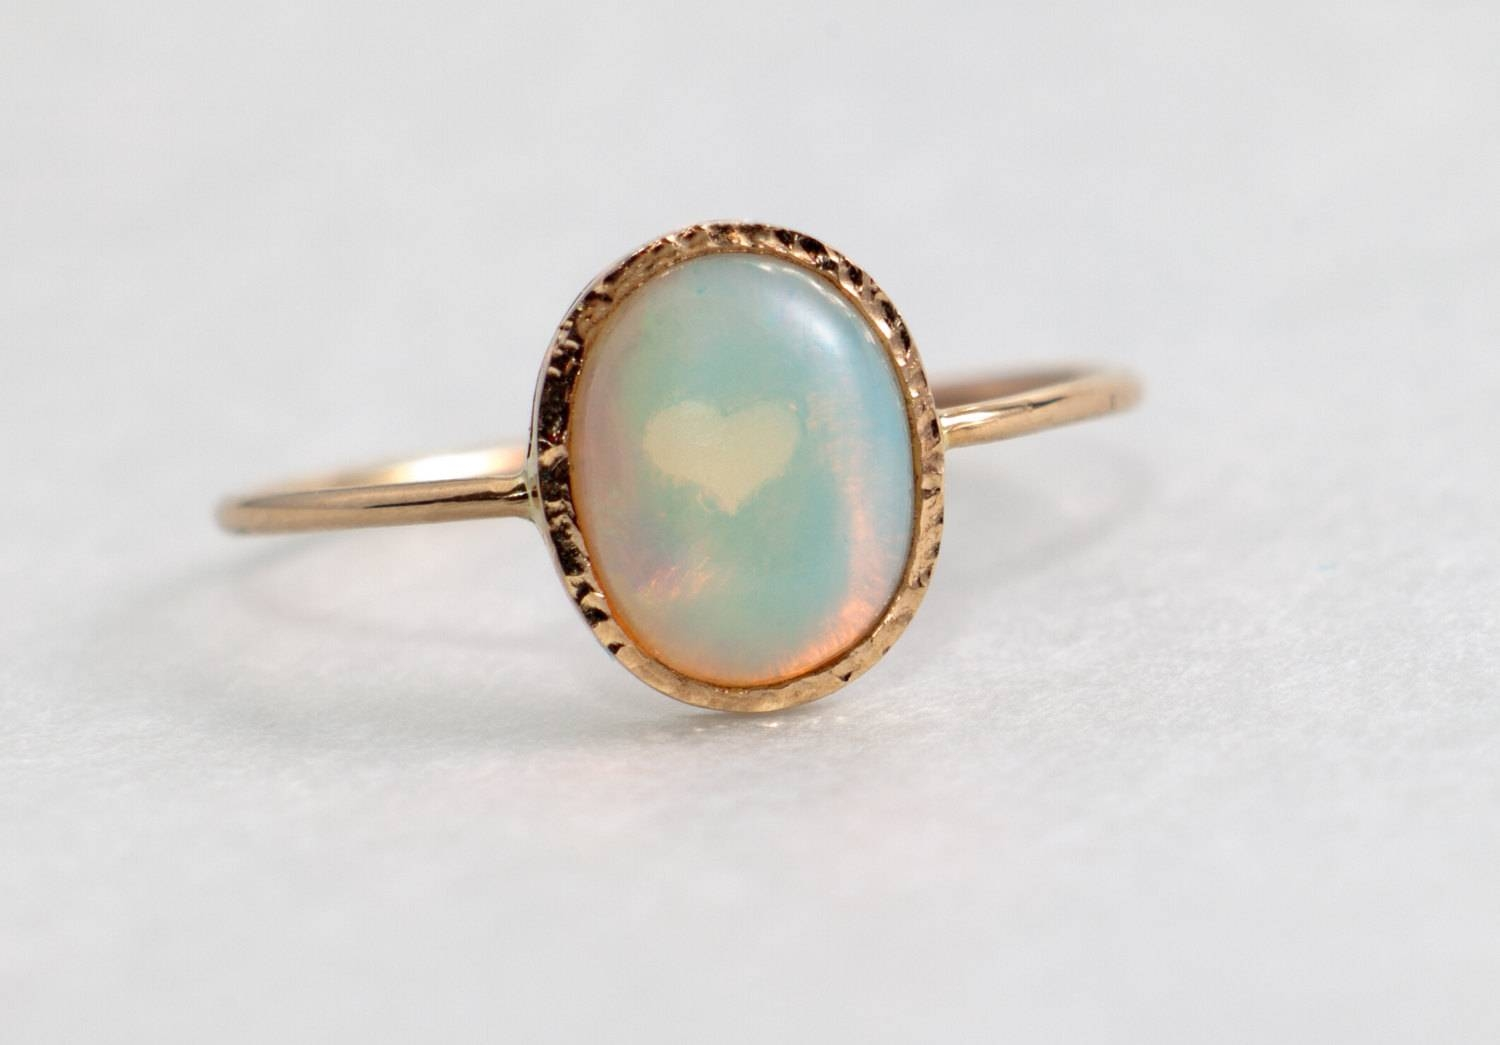 Fire Opal Engagement Ring, Solid 14K Gold, Opal Jewelry Intended For Opal Wedding Bands (View 8 of 15)